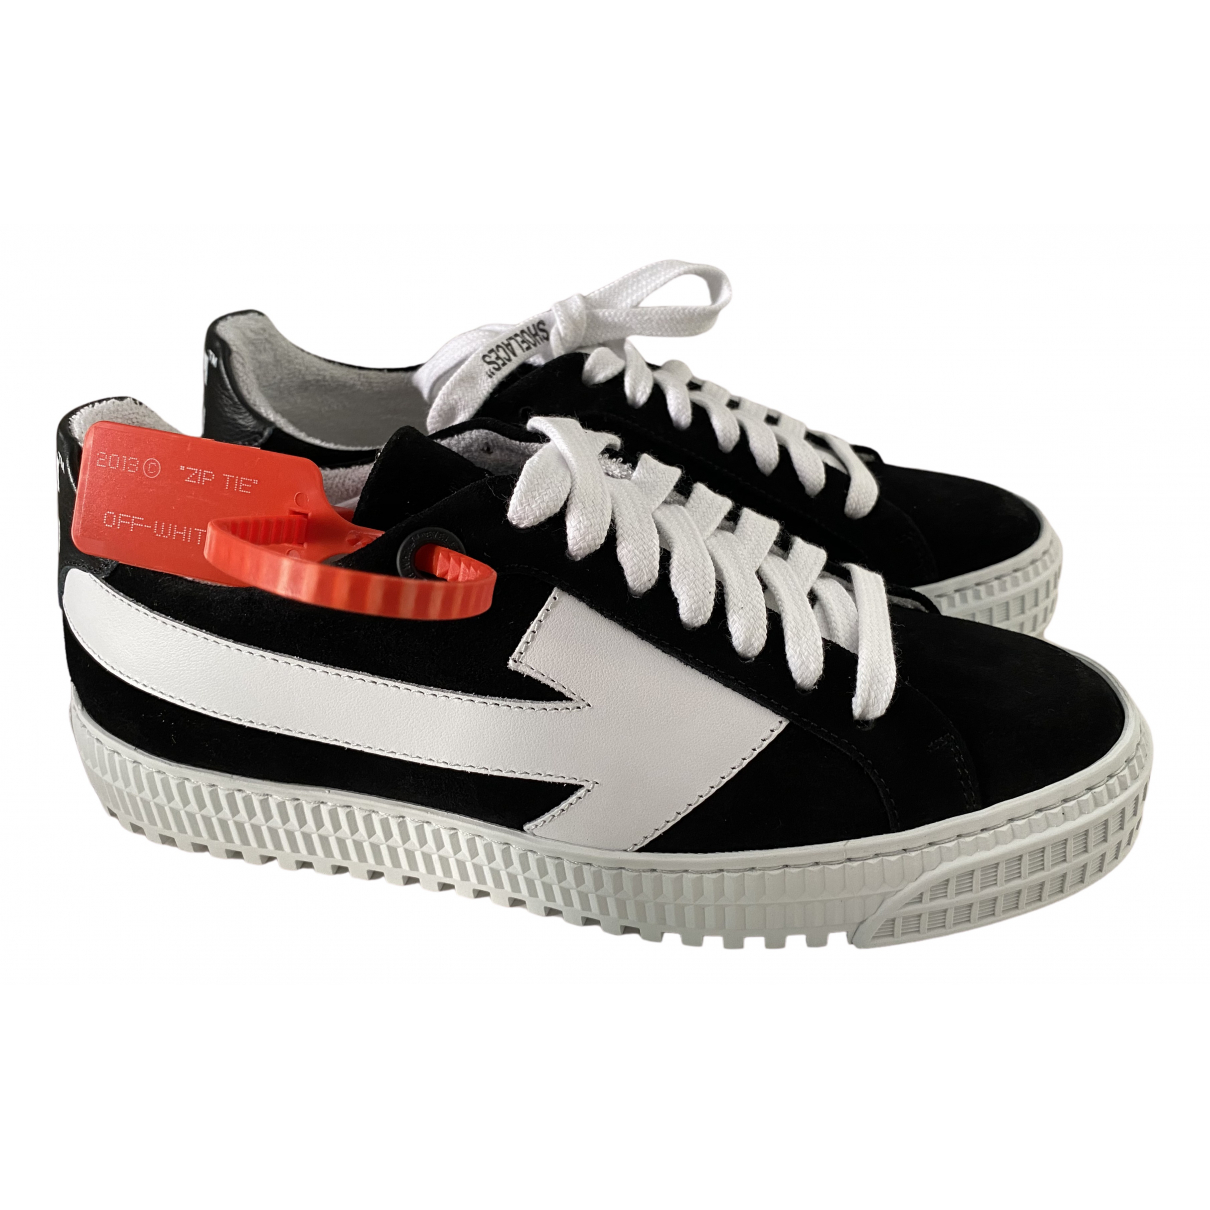 Off-white - Baskets Arrow pour femme en suede - noir